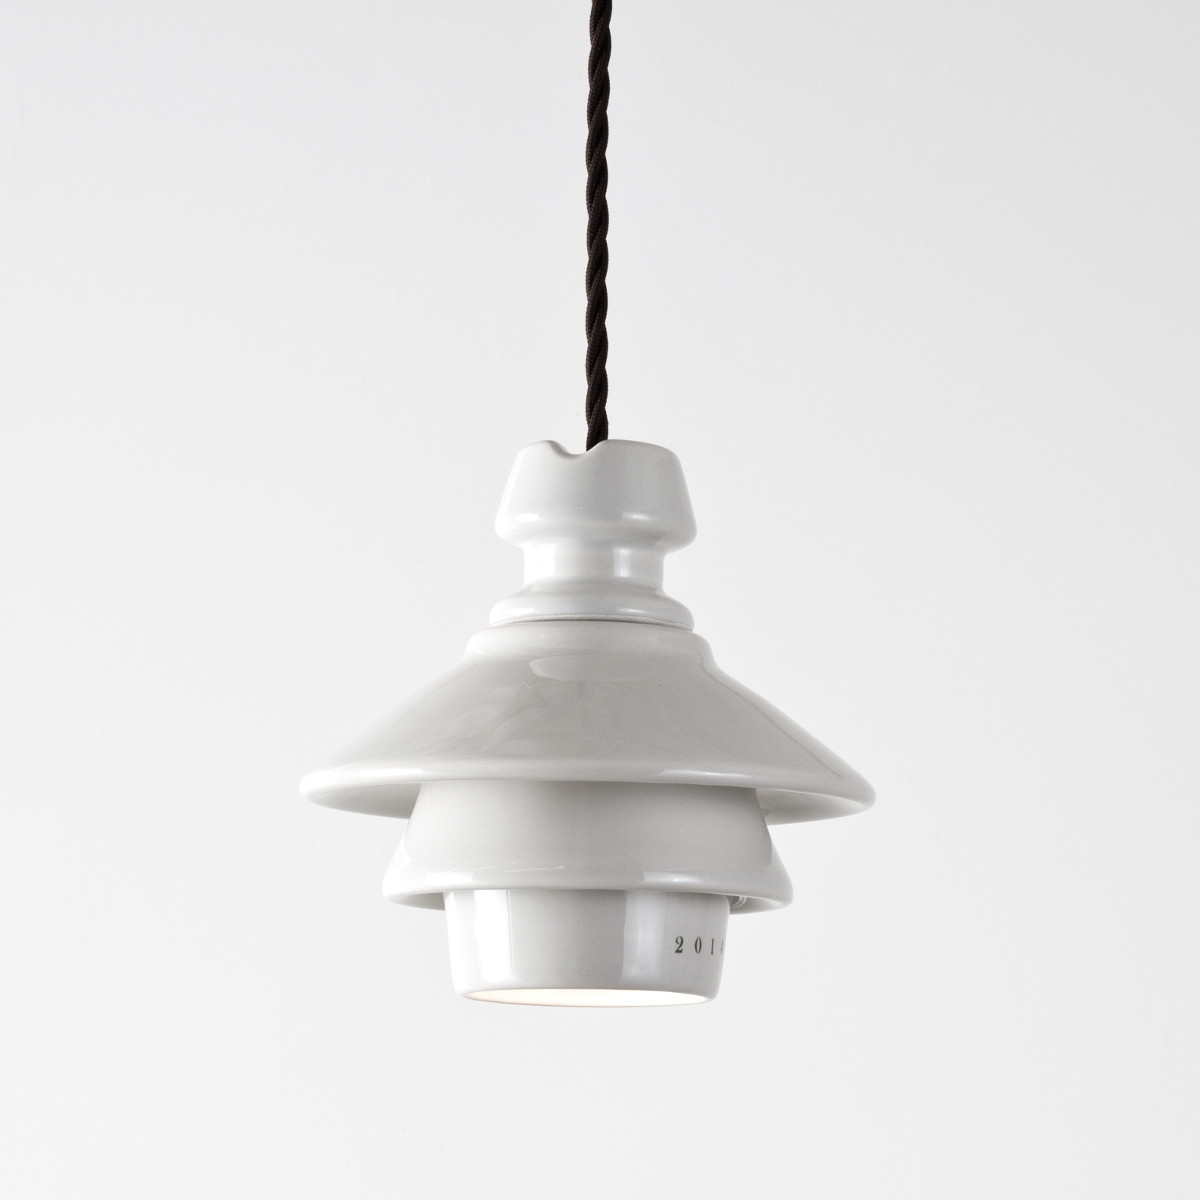 Petite suspension industrielle en c ramique battersea for Suspension luminaire original